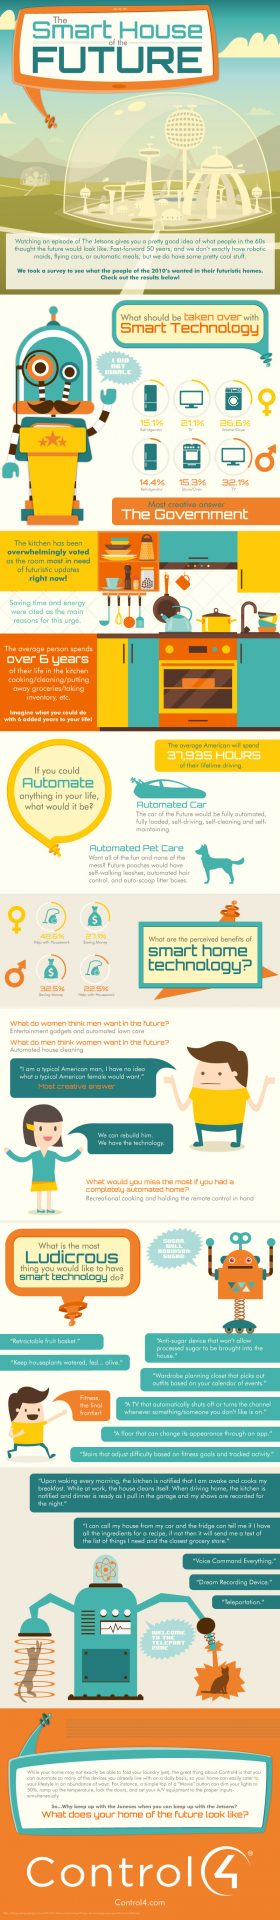 infographic internet of things smart home